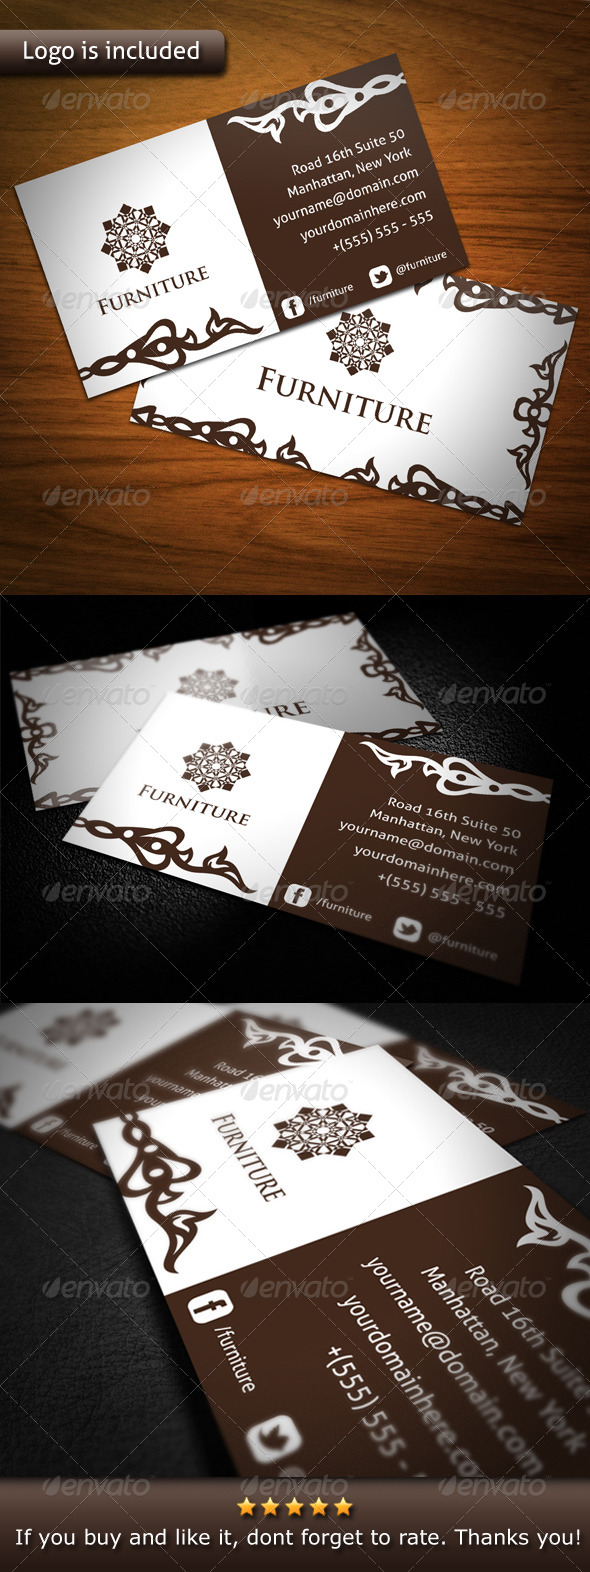 Furniture brand business card by bosstwinsart graphicriver furniture brand business card retrovintage business cards colourmoves